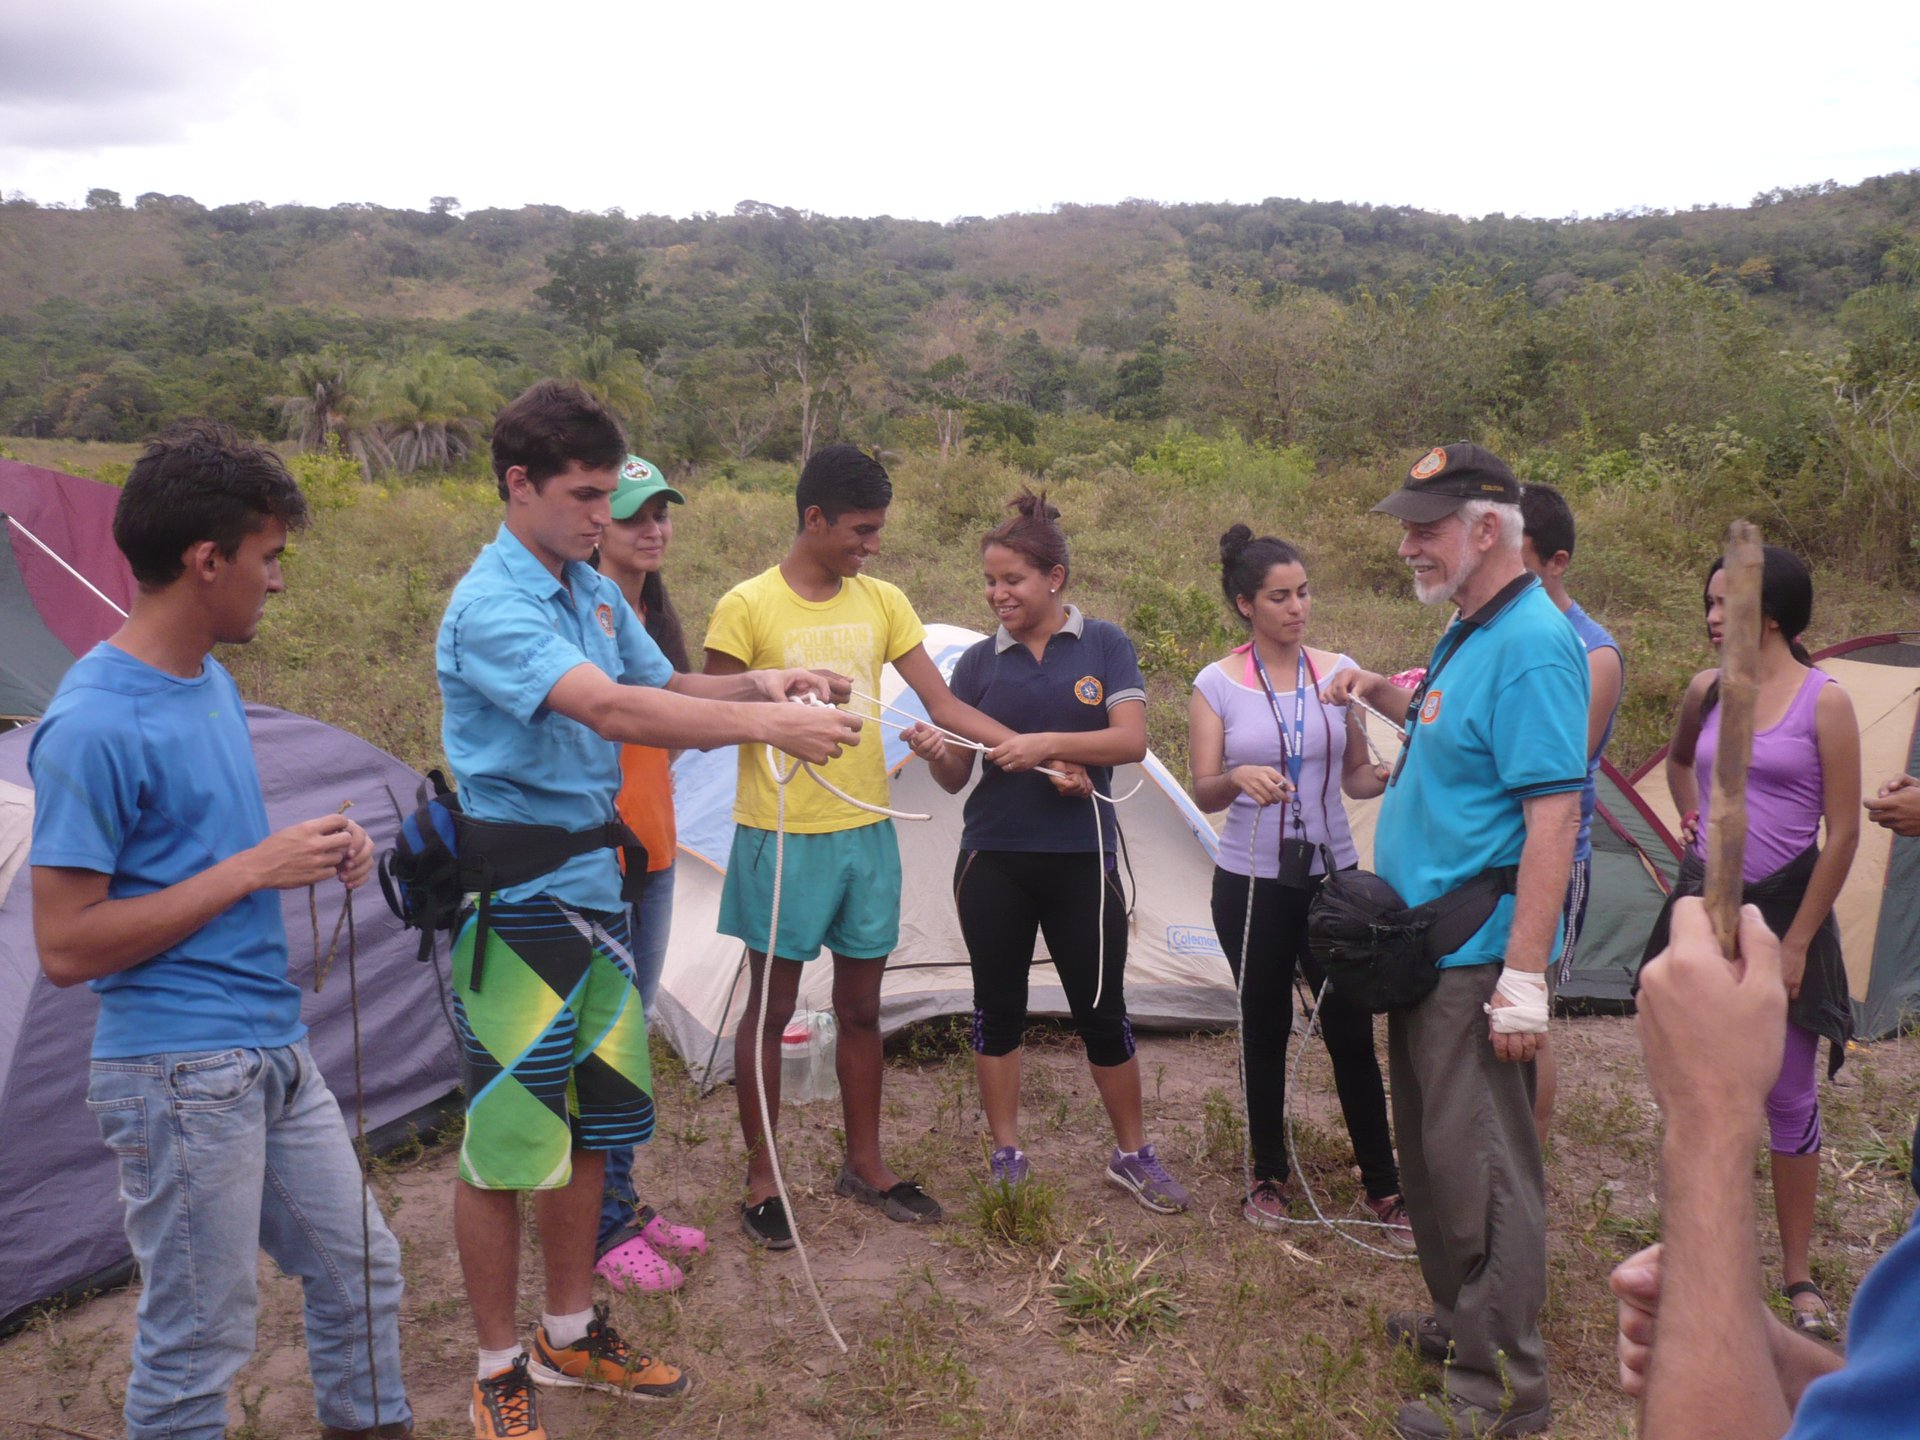 Knots Training in Outdoors Survival Campout | Monagas, Venezuela | Prof. Juan F. Peraza Marsiglia